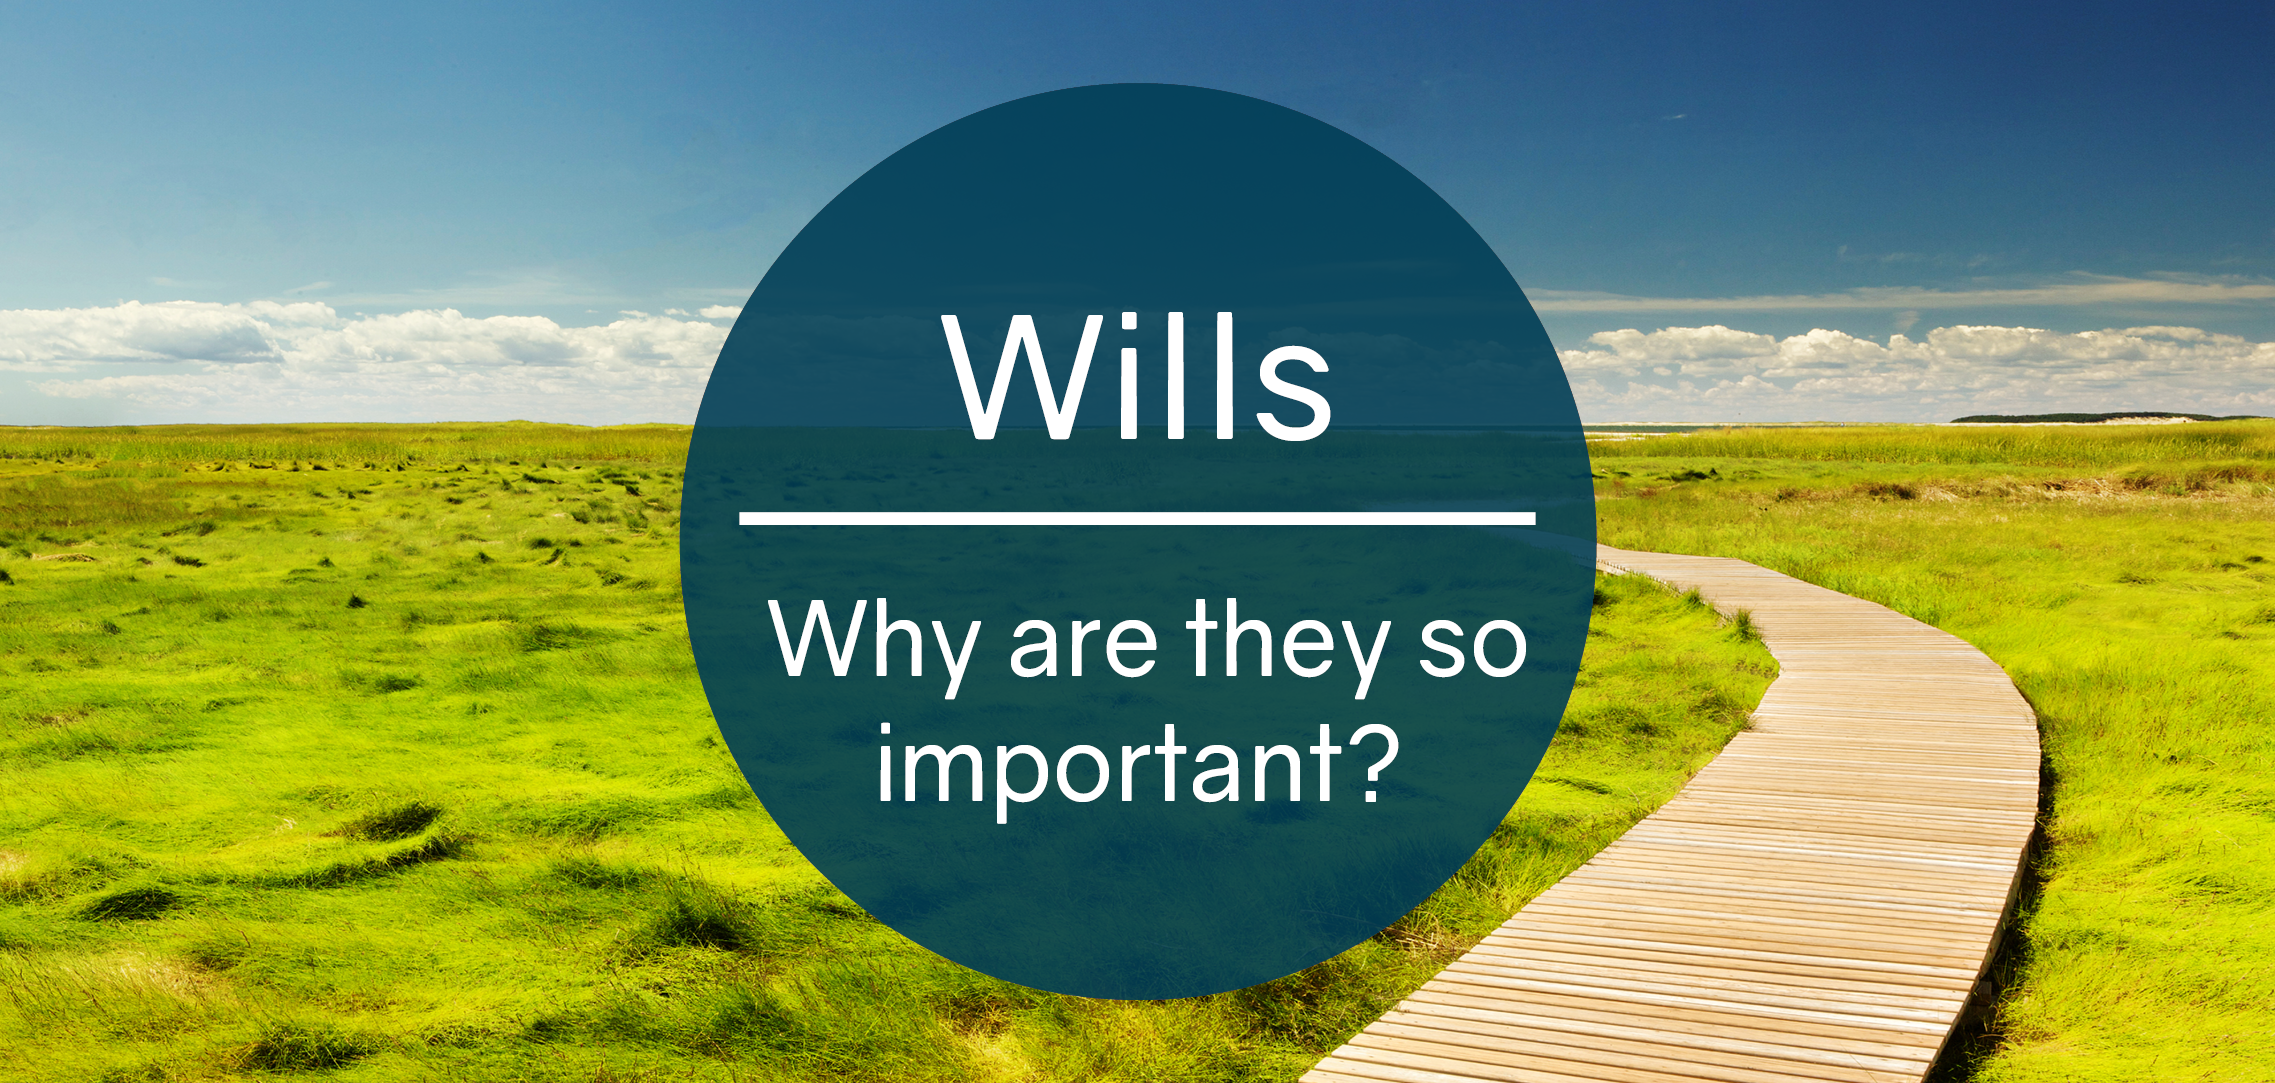 Wills, why are they so important?